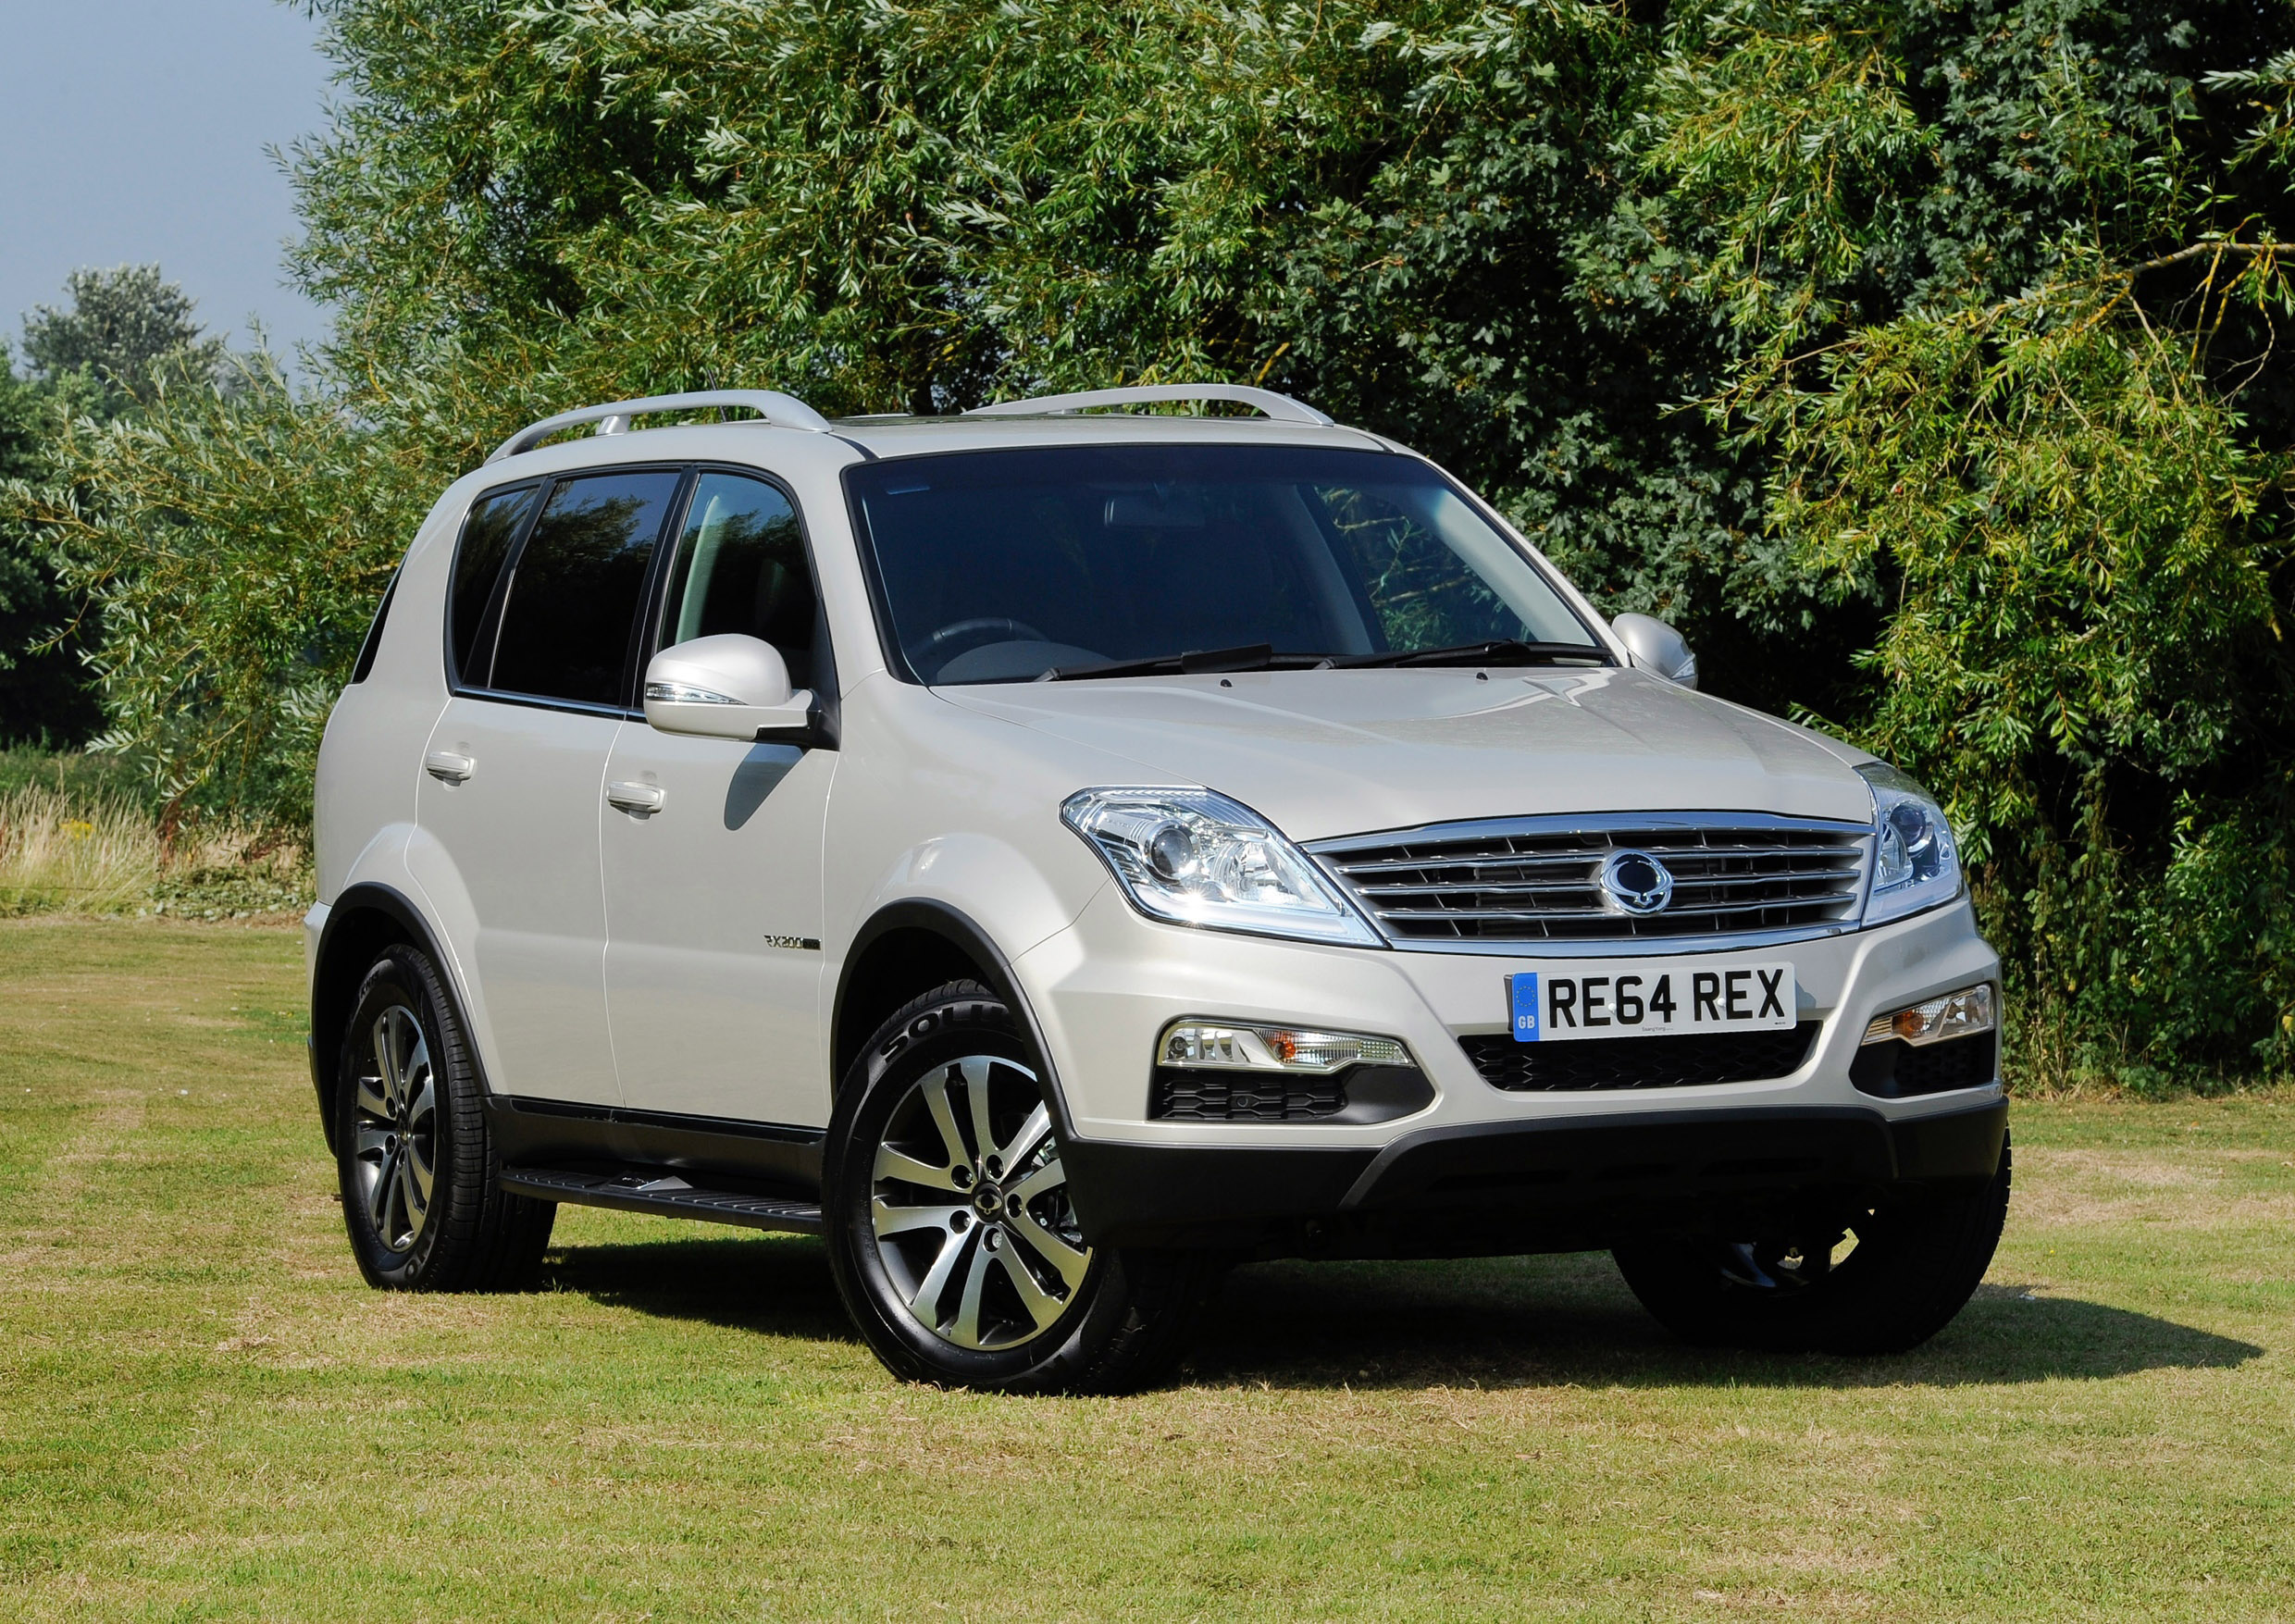 ssangyong rexton w and korando 60th anniversary picture. Black Bedroom Furniture Sets. Home Design Ideas